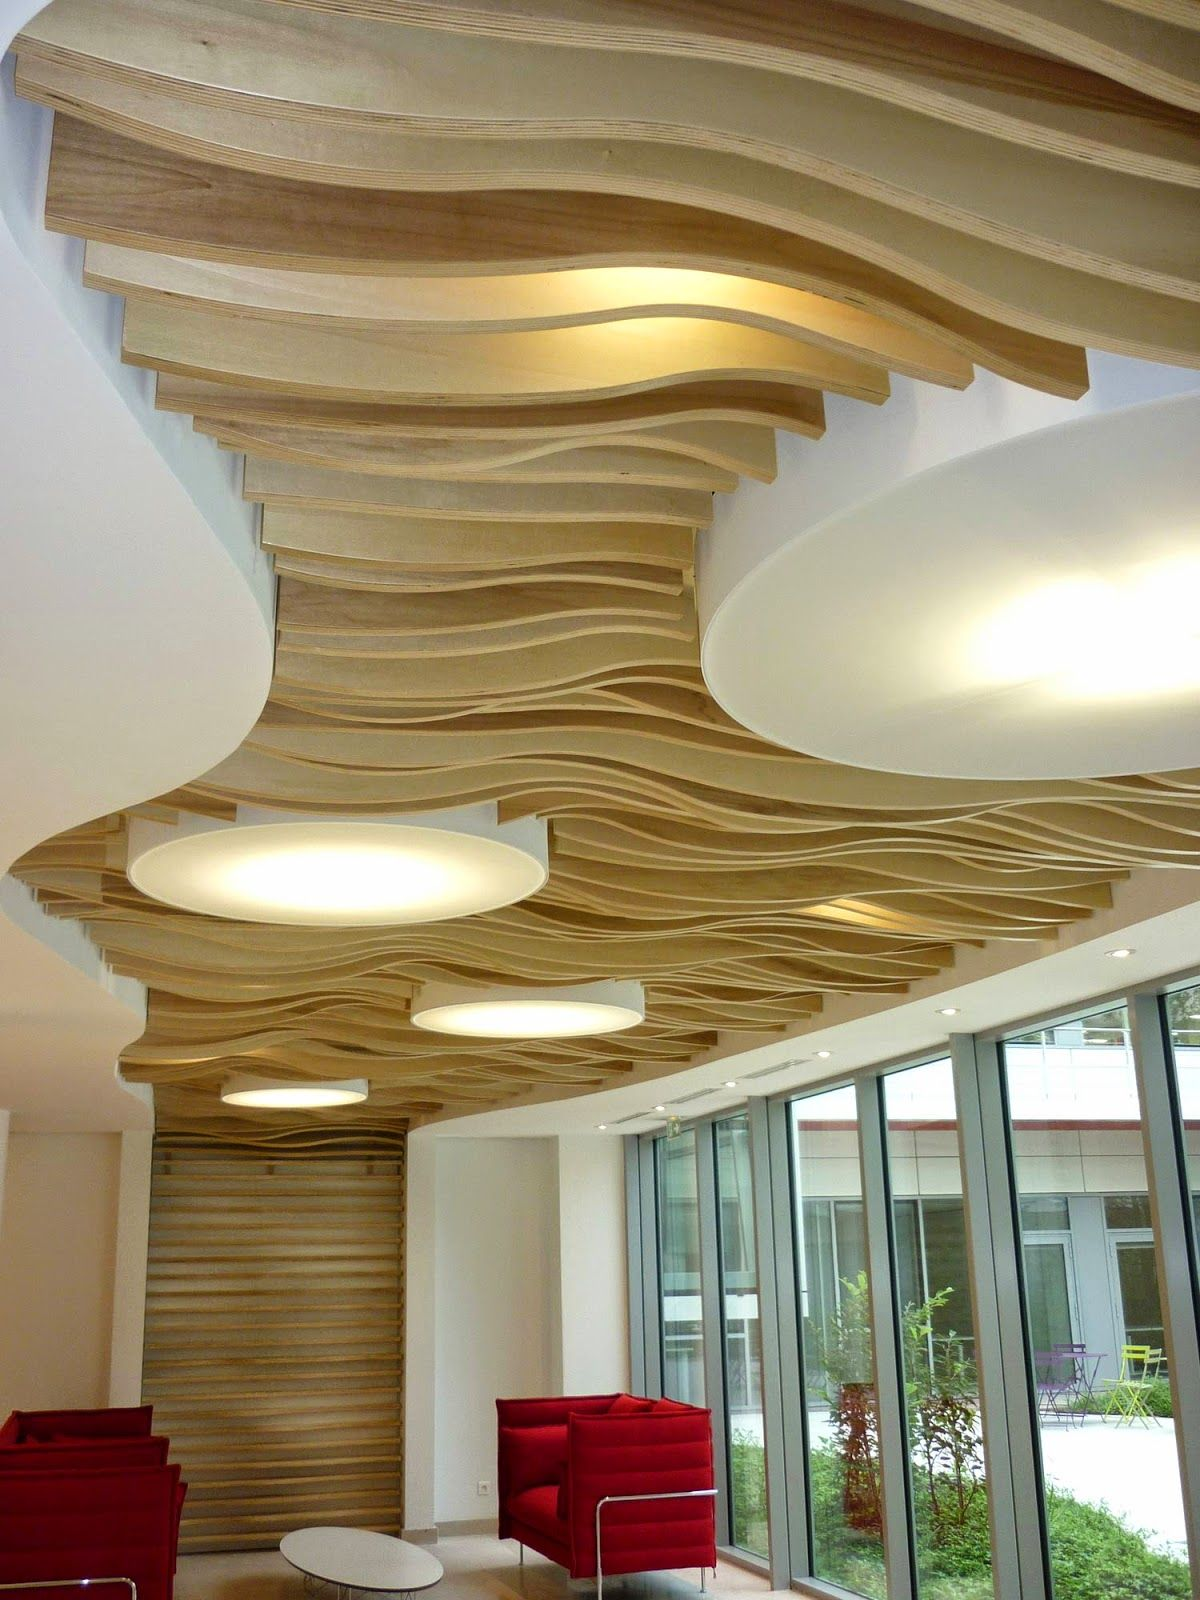 Batiment bepos 92 commercial ceiling design false - Living room false ceiling designs ...